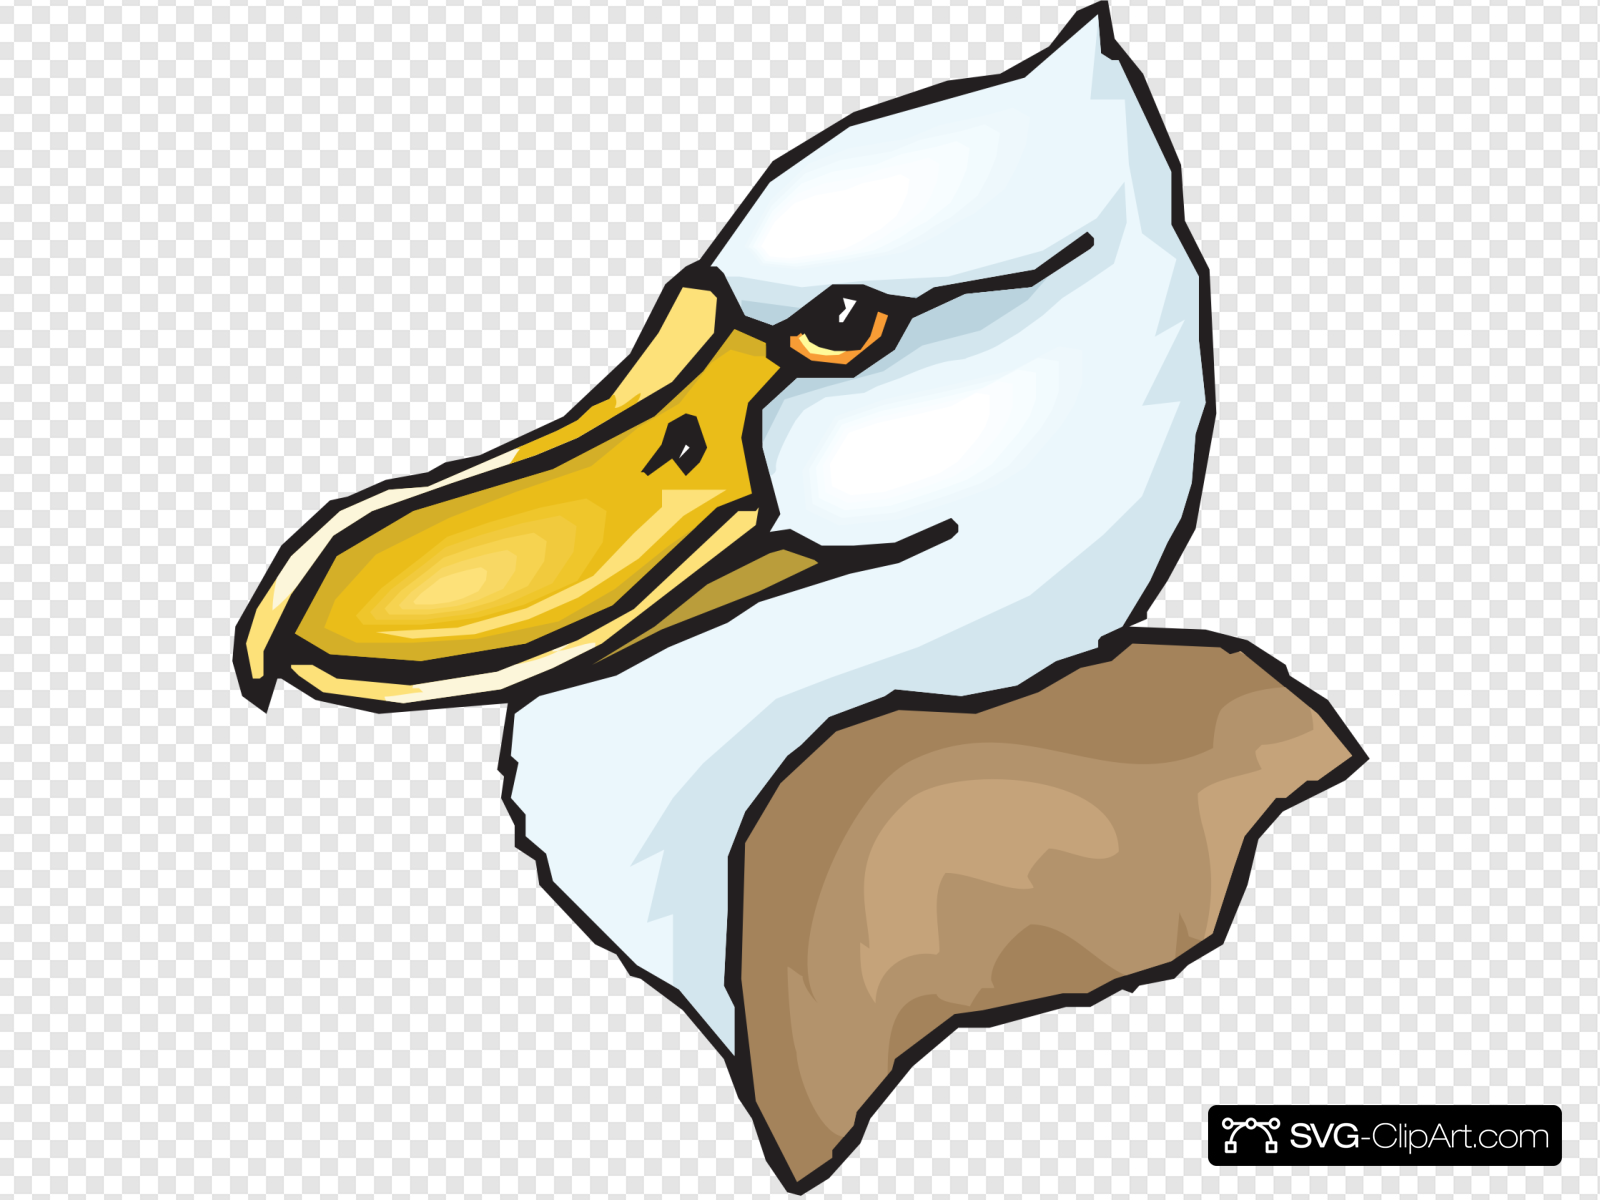 Big Beaked Duck Head Clip art, Icon and SVG.